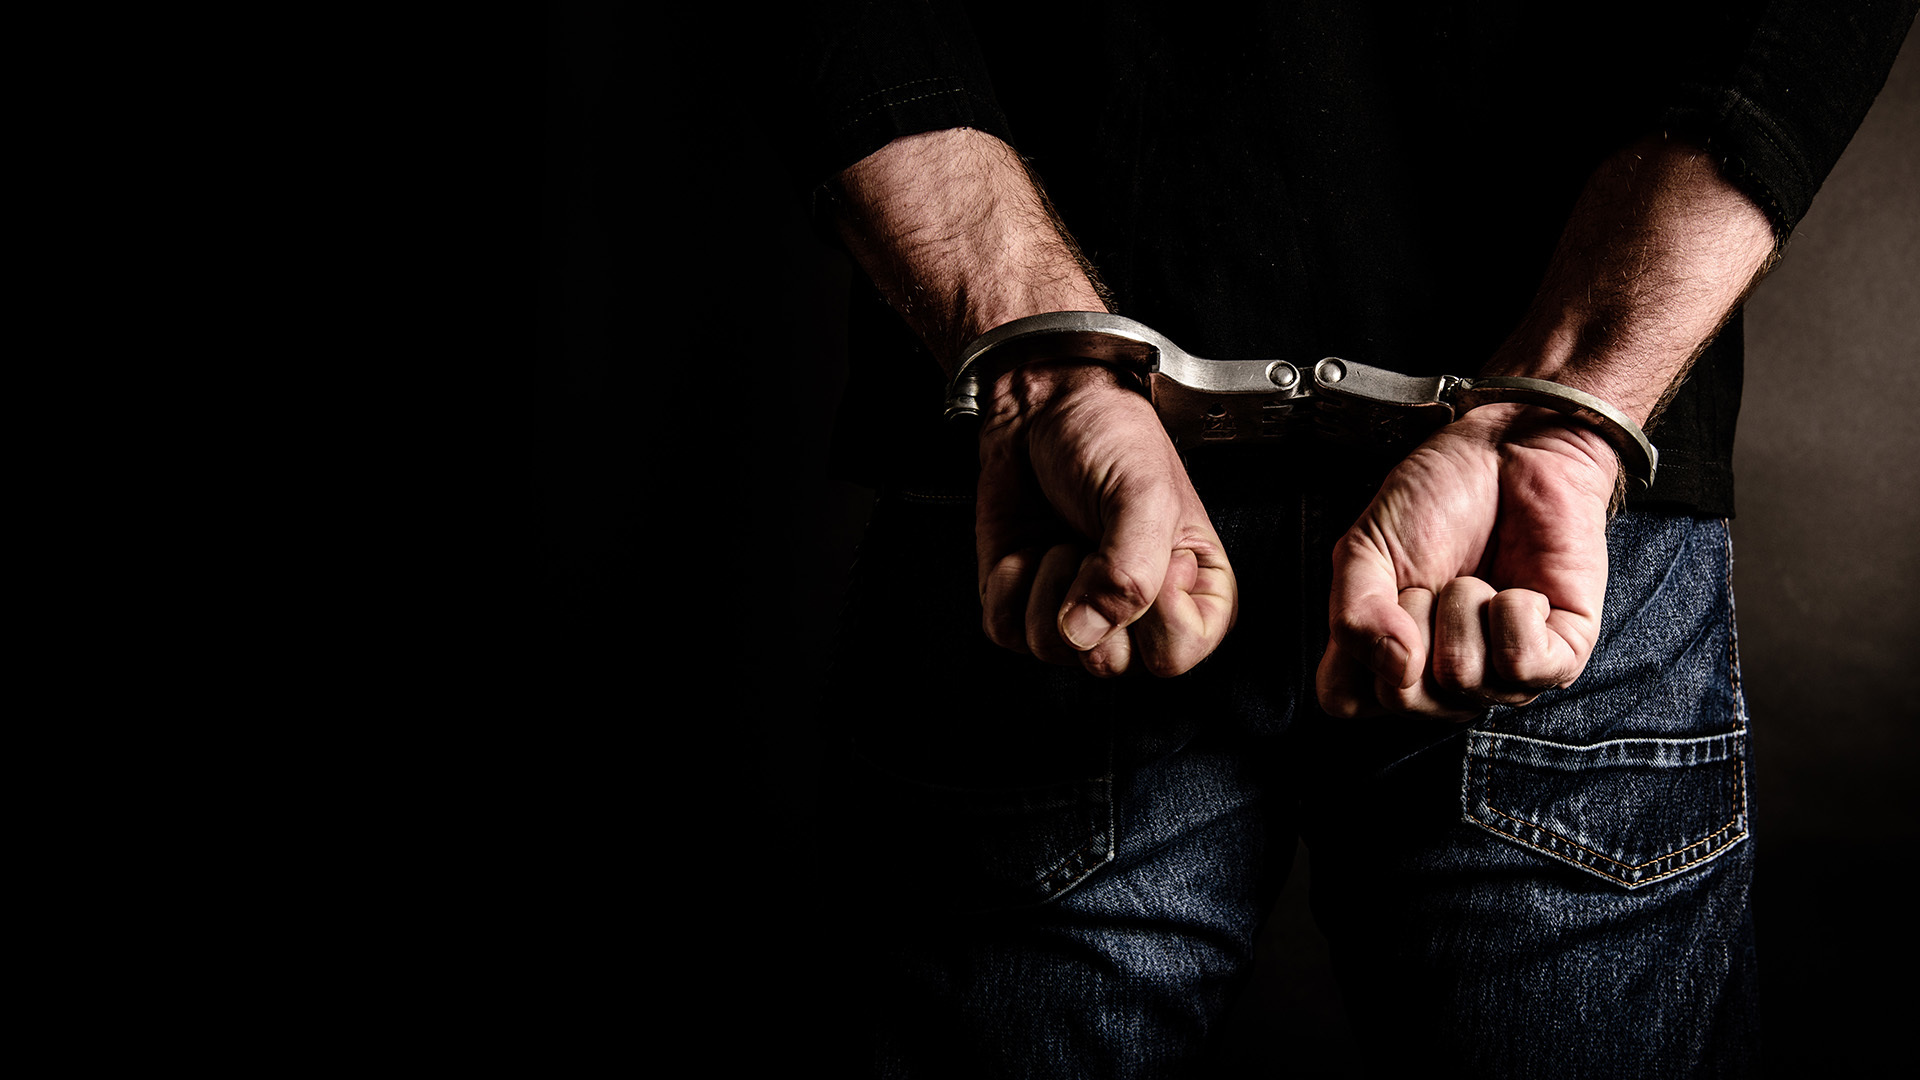 Safeguarding the future with perfect Bail bonds